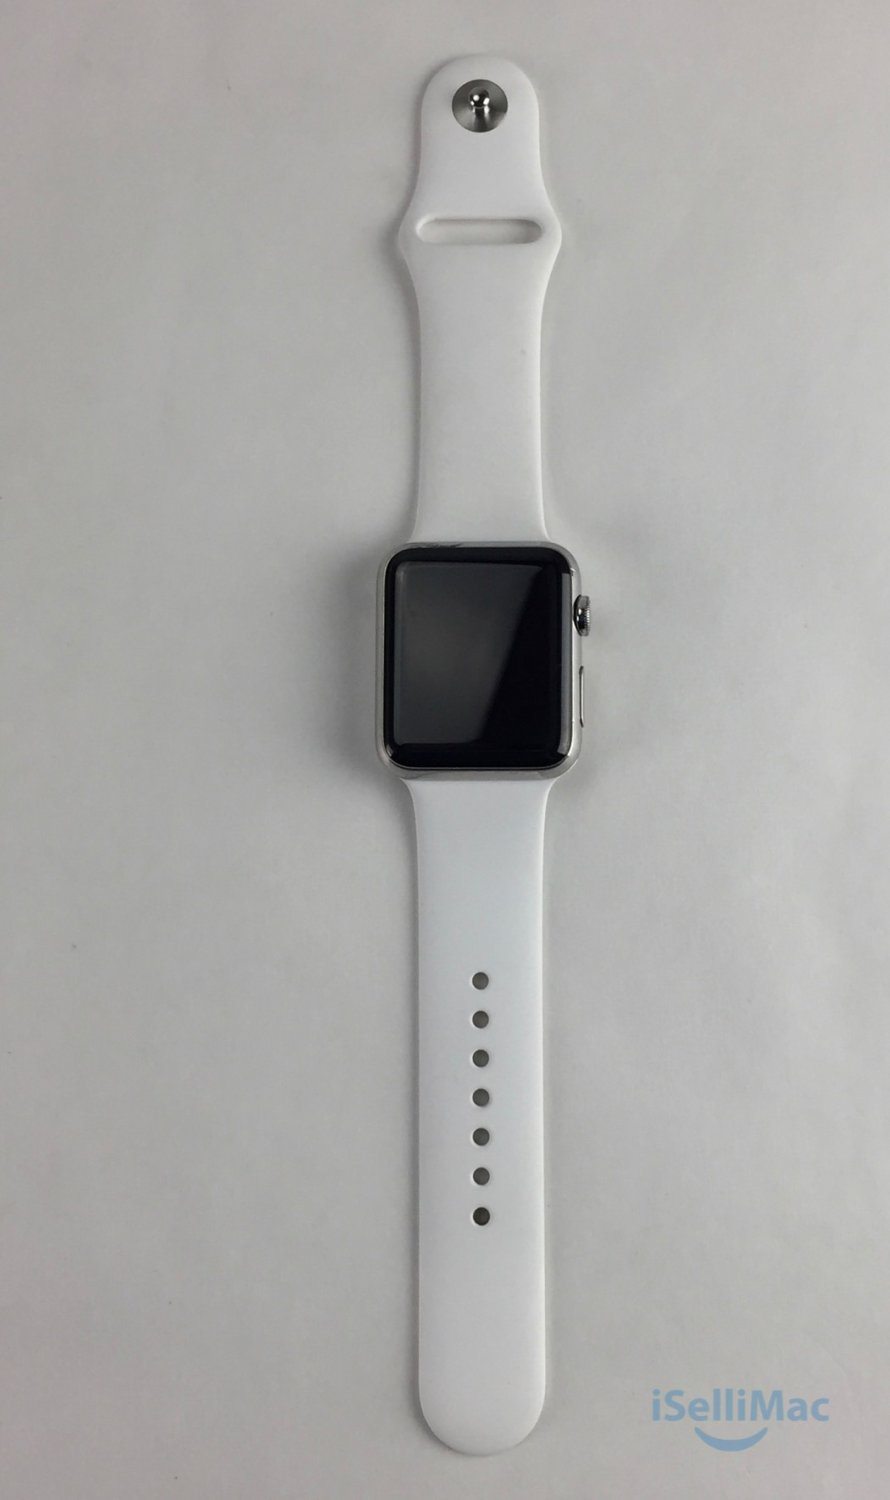 Apple WATCH 42mm Stainless Steel Case White Sport Band (NJ3U2LL/A) + Warranty!